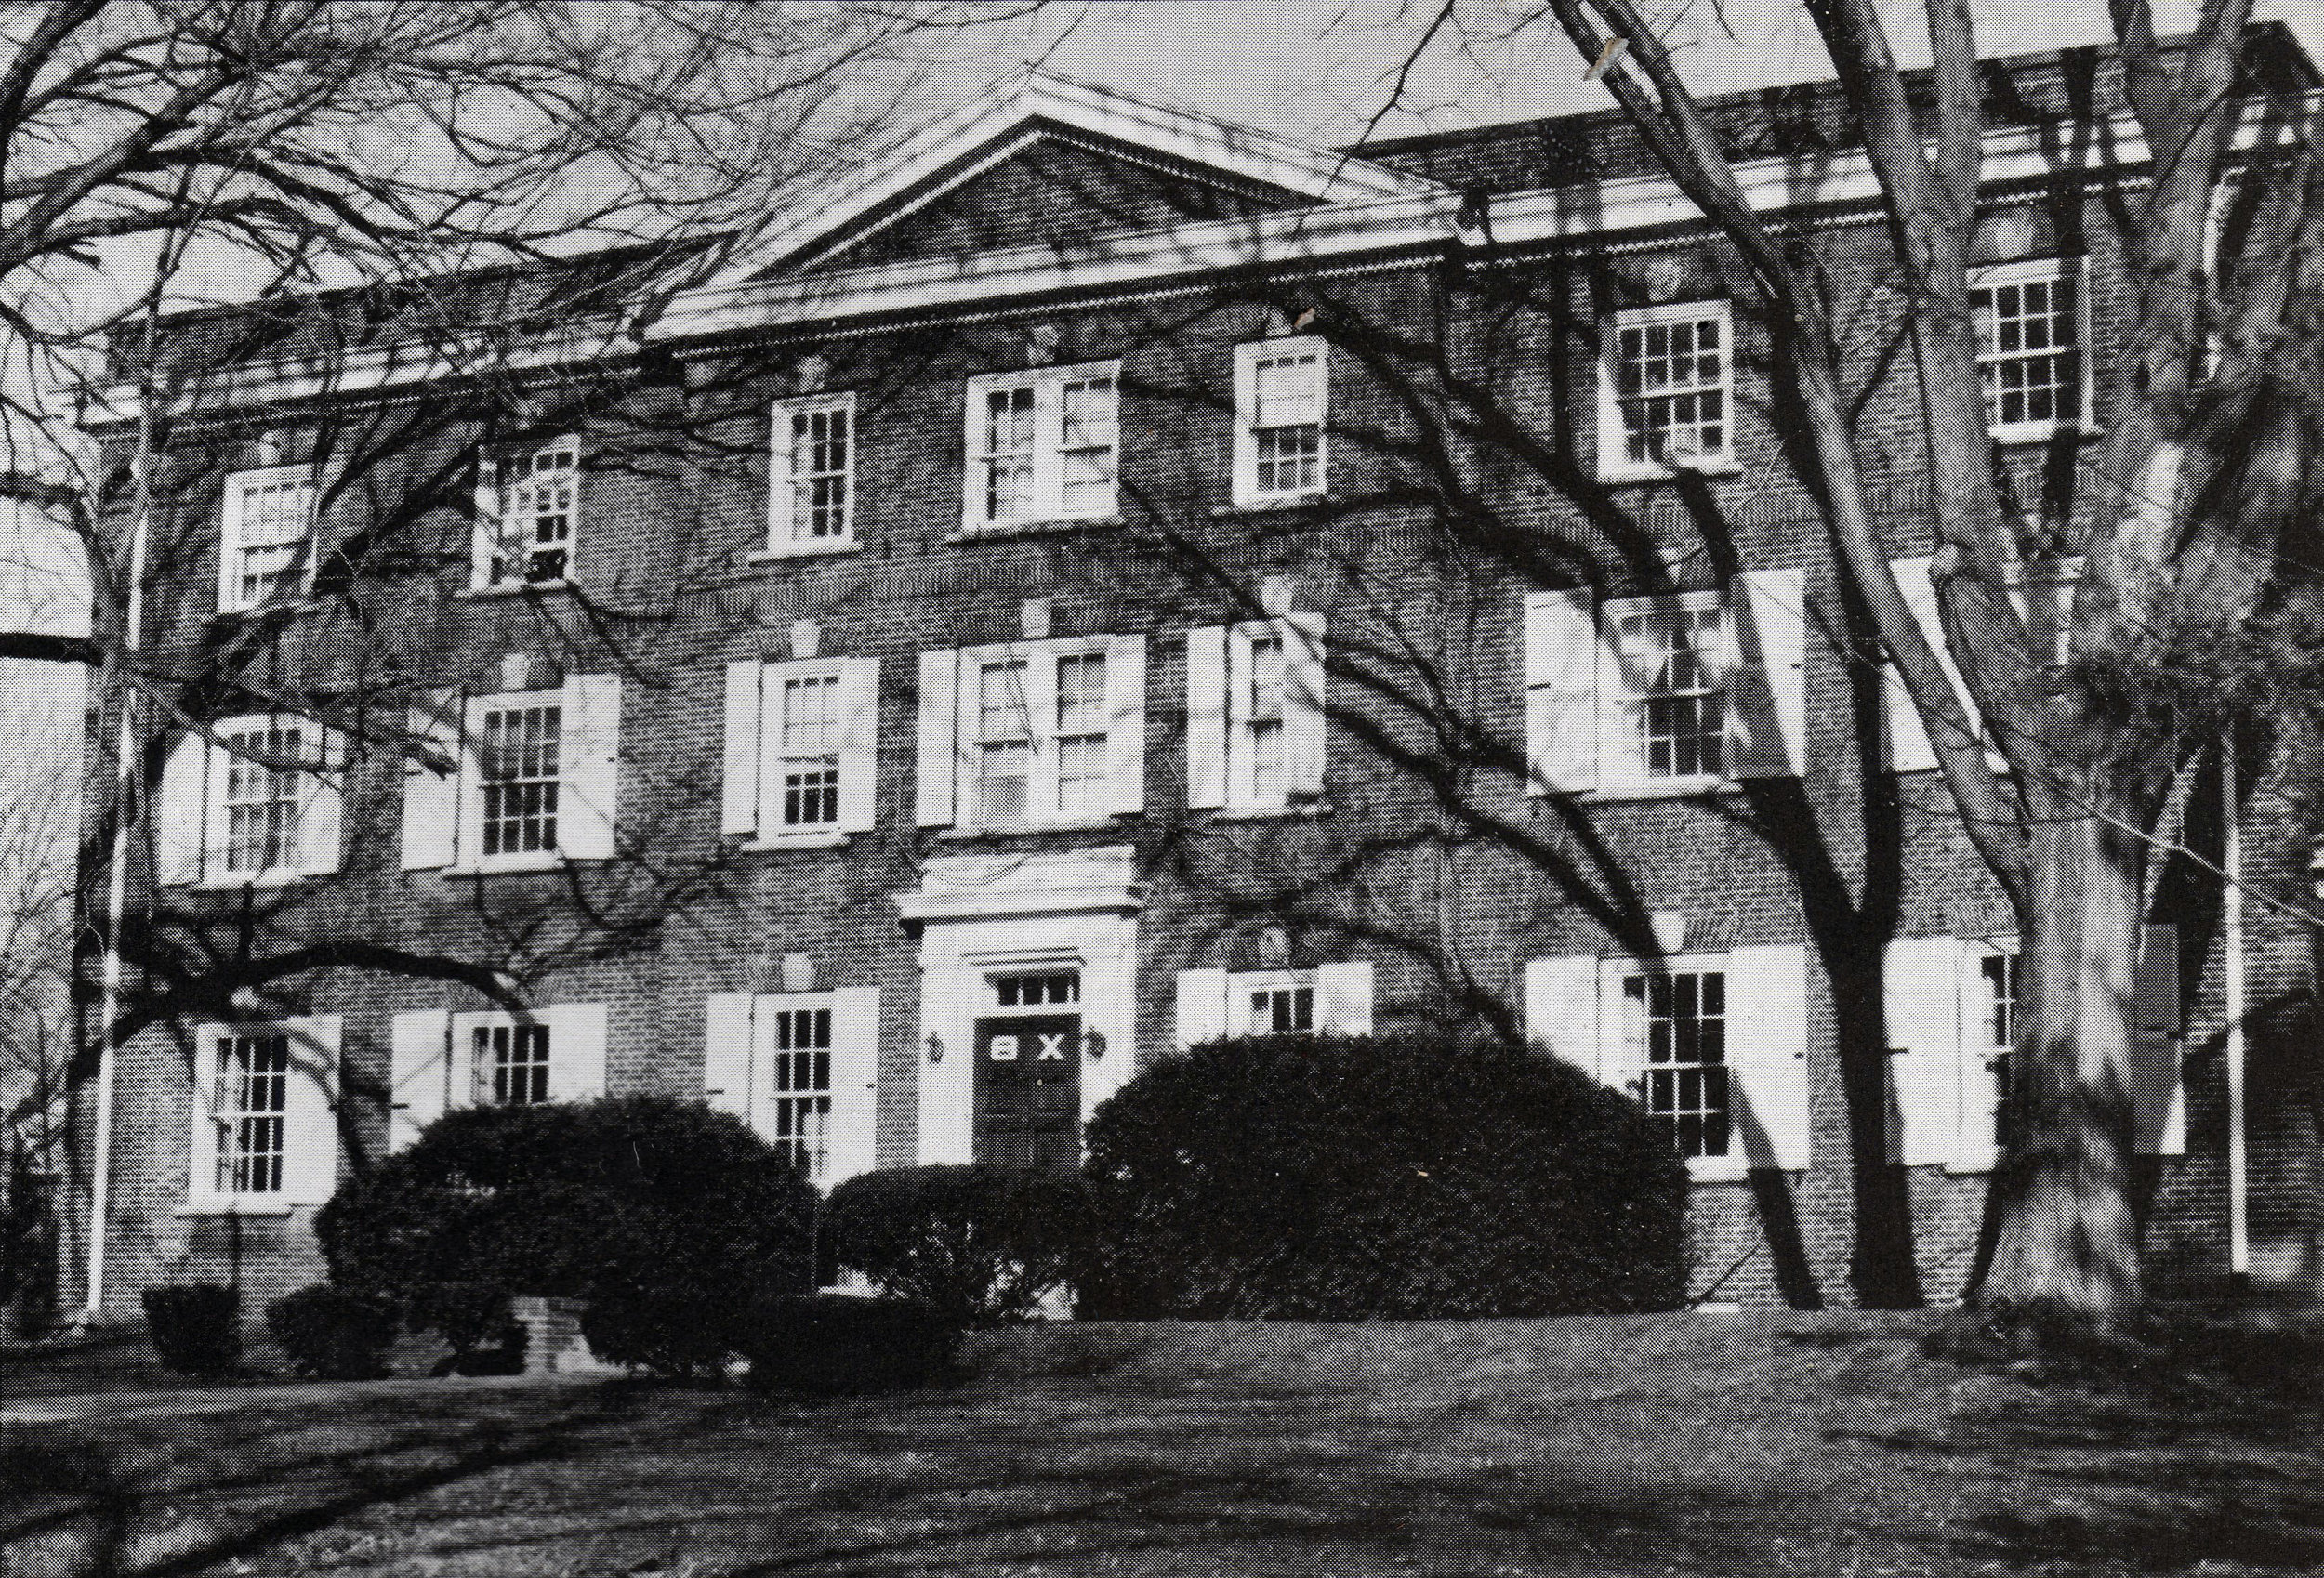 The House as it appeared in